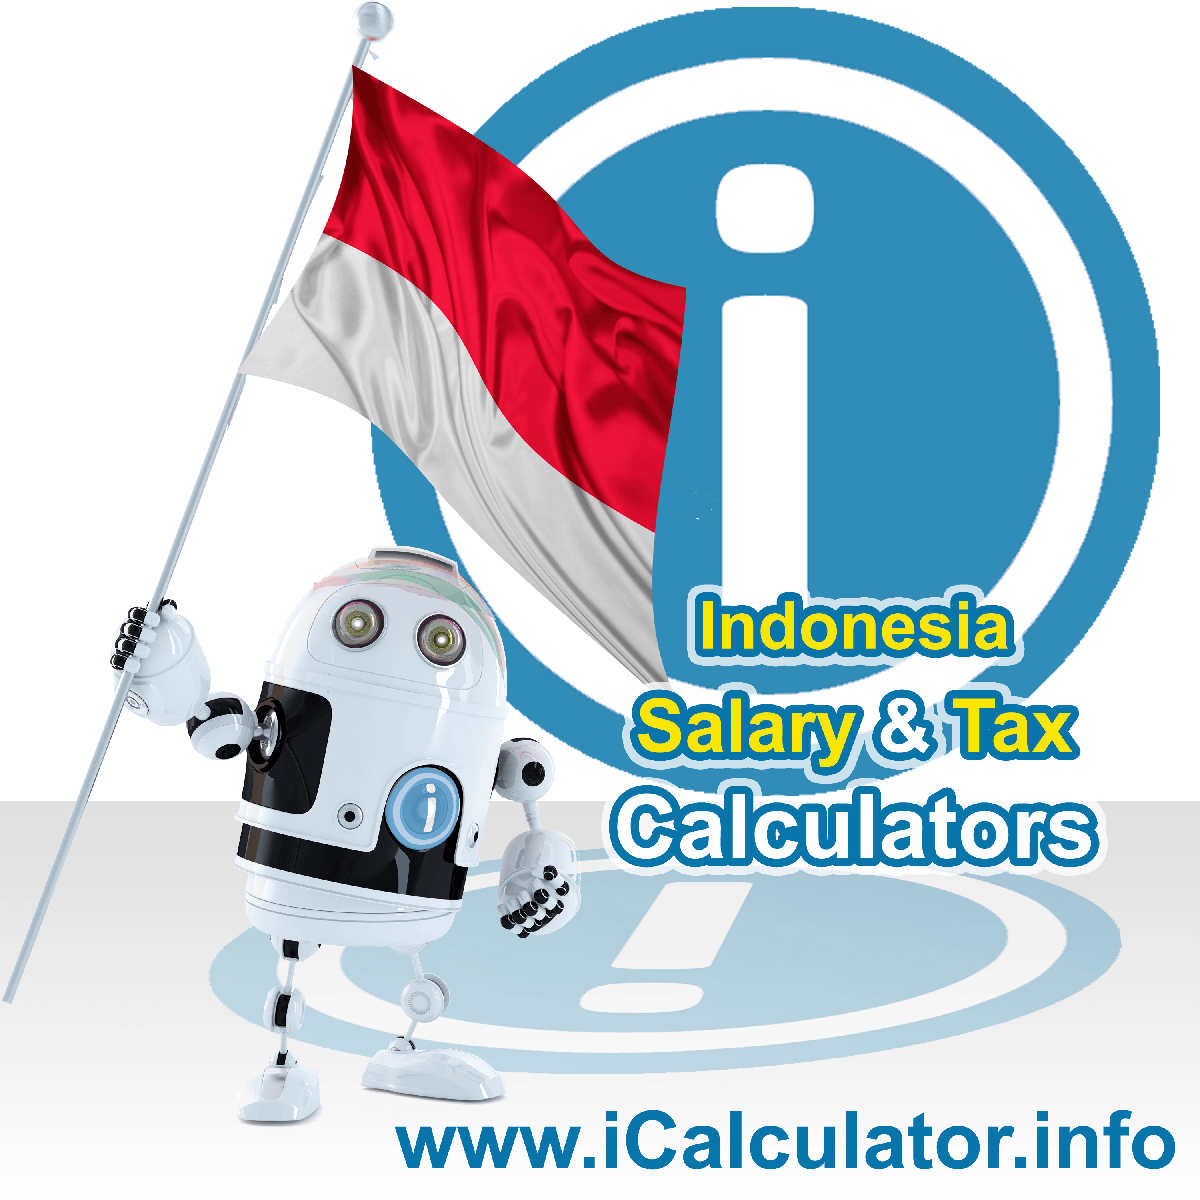 Indonesia Tax Calculator. This image shows the Indonesia flag and information relating to the tax formula for the Indonesia Salary Calculator